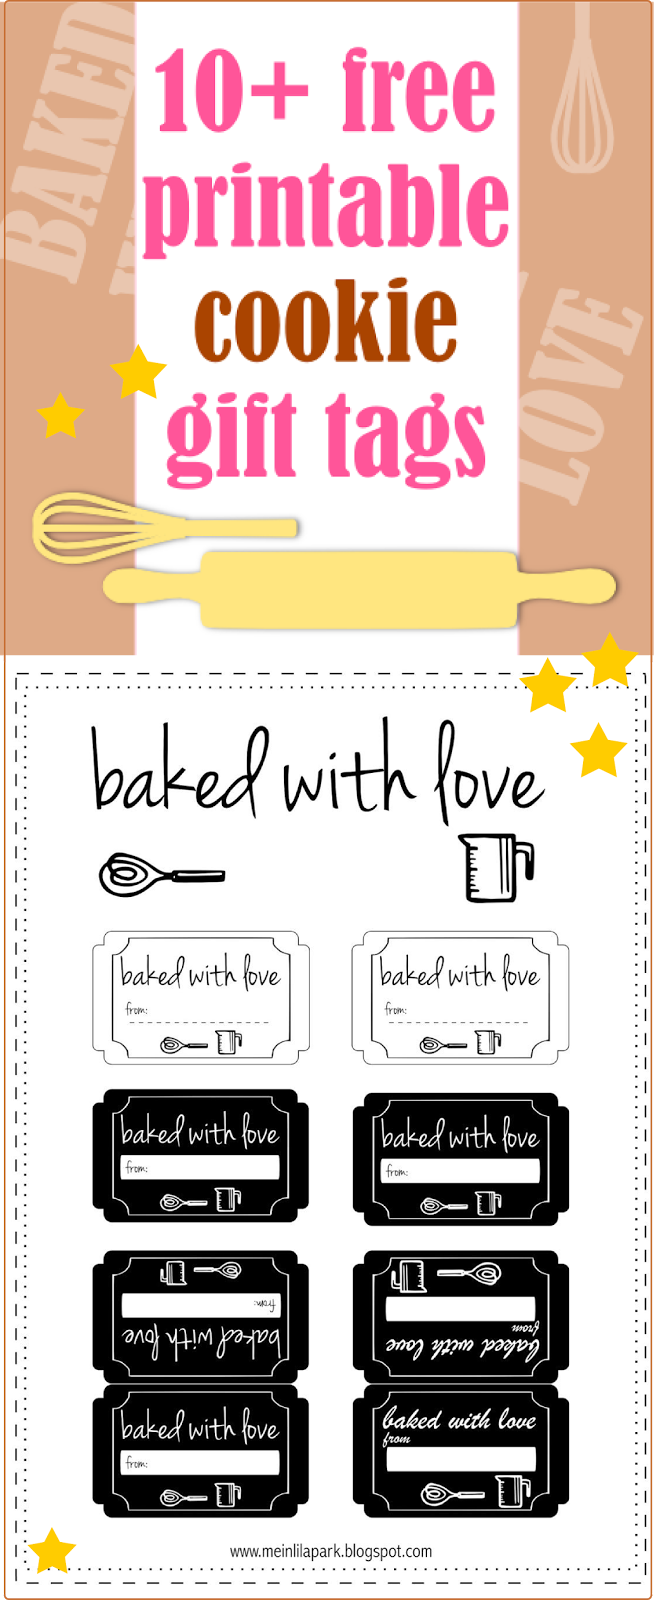 Free printable cookie tags gift labels for bakery goods baked free printable cookie tags gift labels for bakery goods baked with love negle Image collections